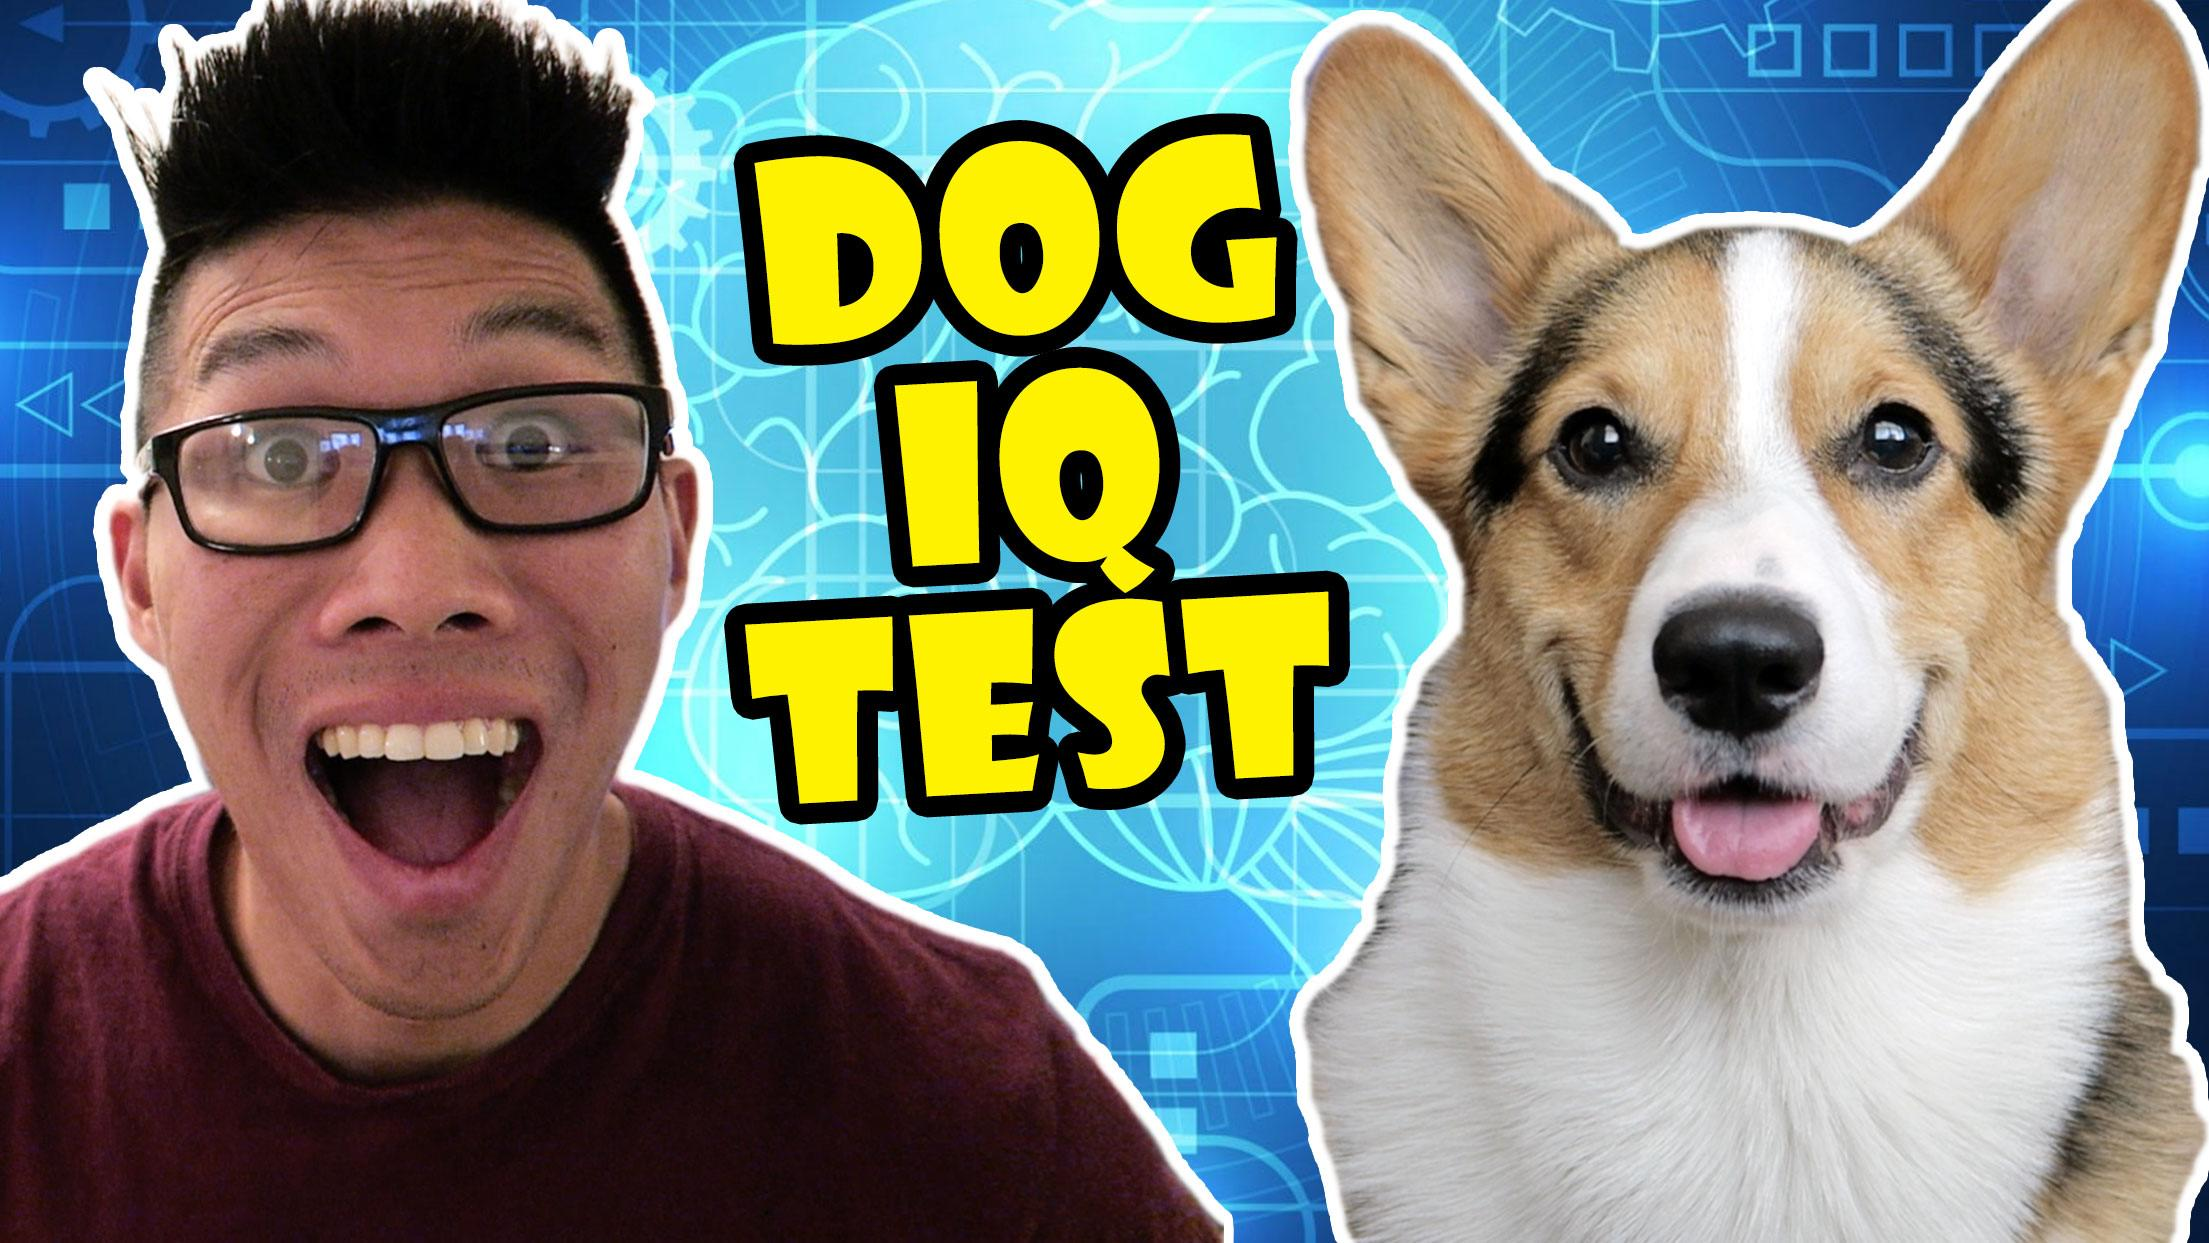 CORGI vs IQ TEST, CAN HE PASS?